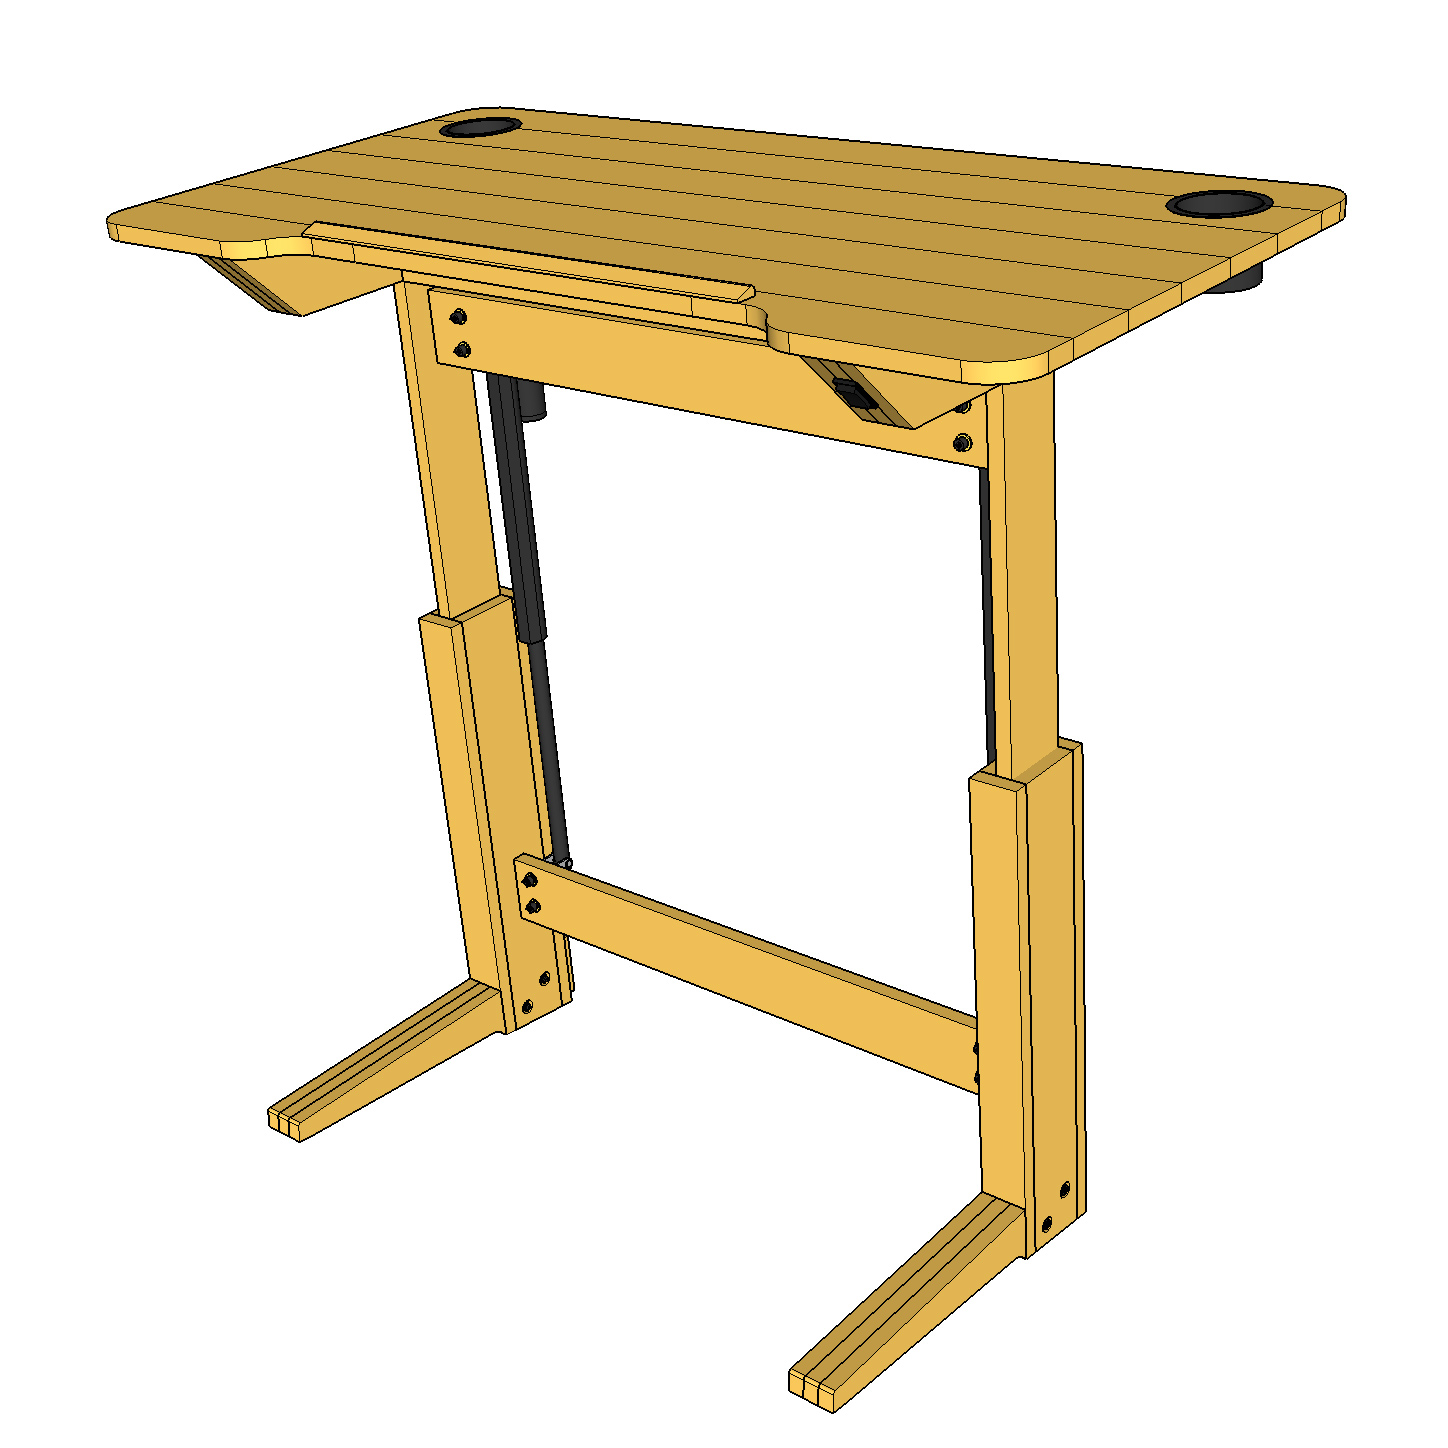 Superior Lift Bridge Standing Desk / Drafting Table Plans   Lift Bridge Furniture